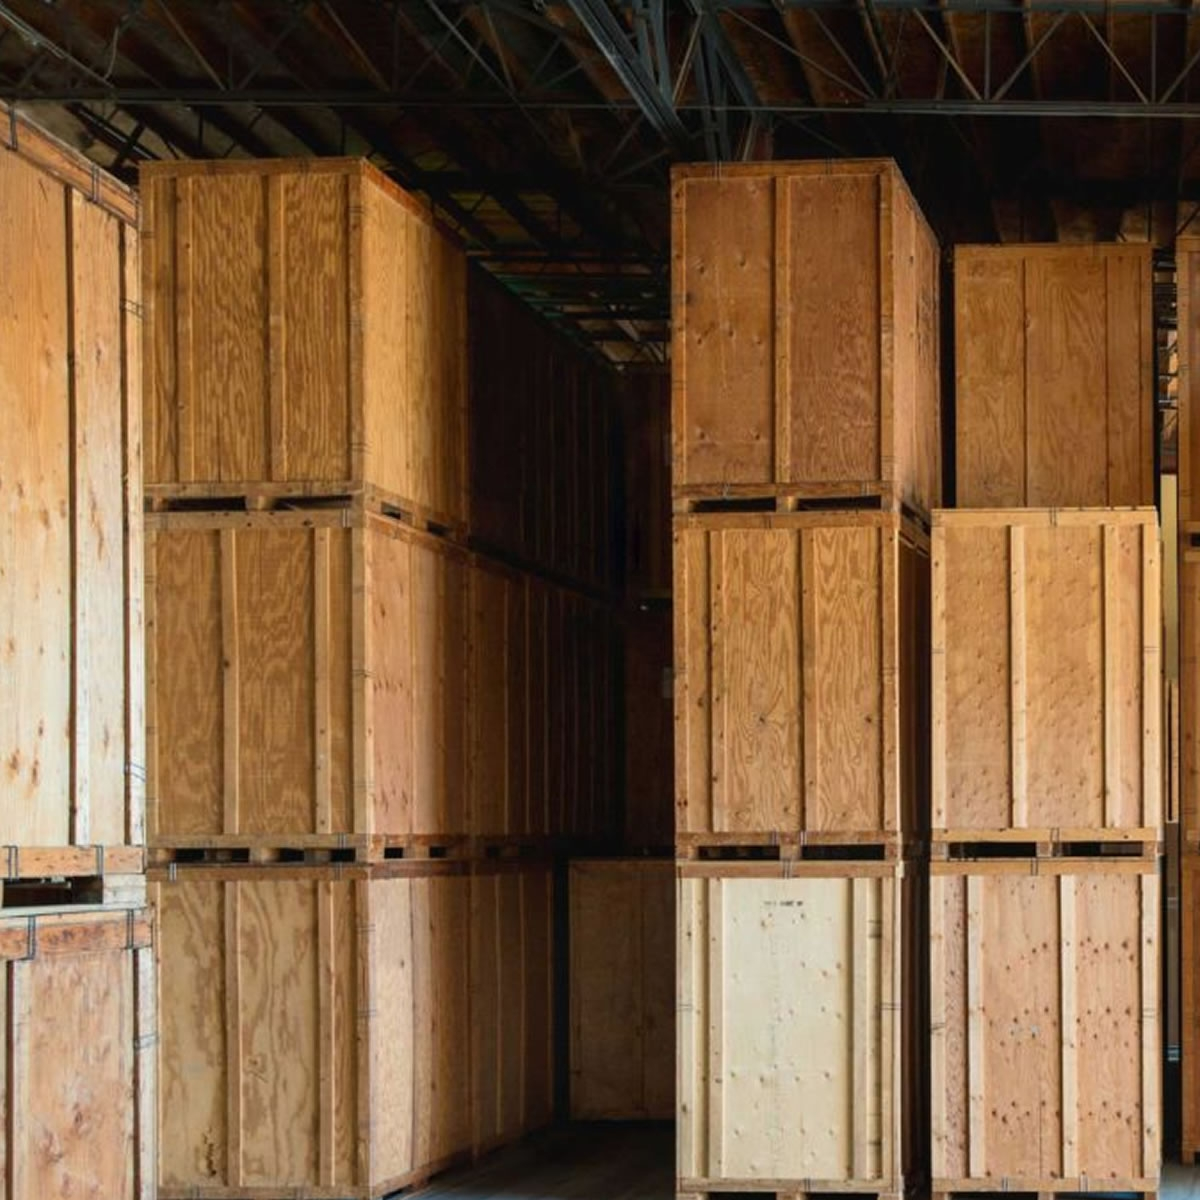 Used Portable Storage Containers | Cheap Wooden Storage Vaults for Sale